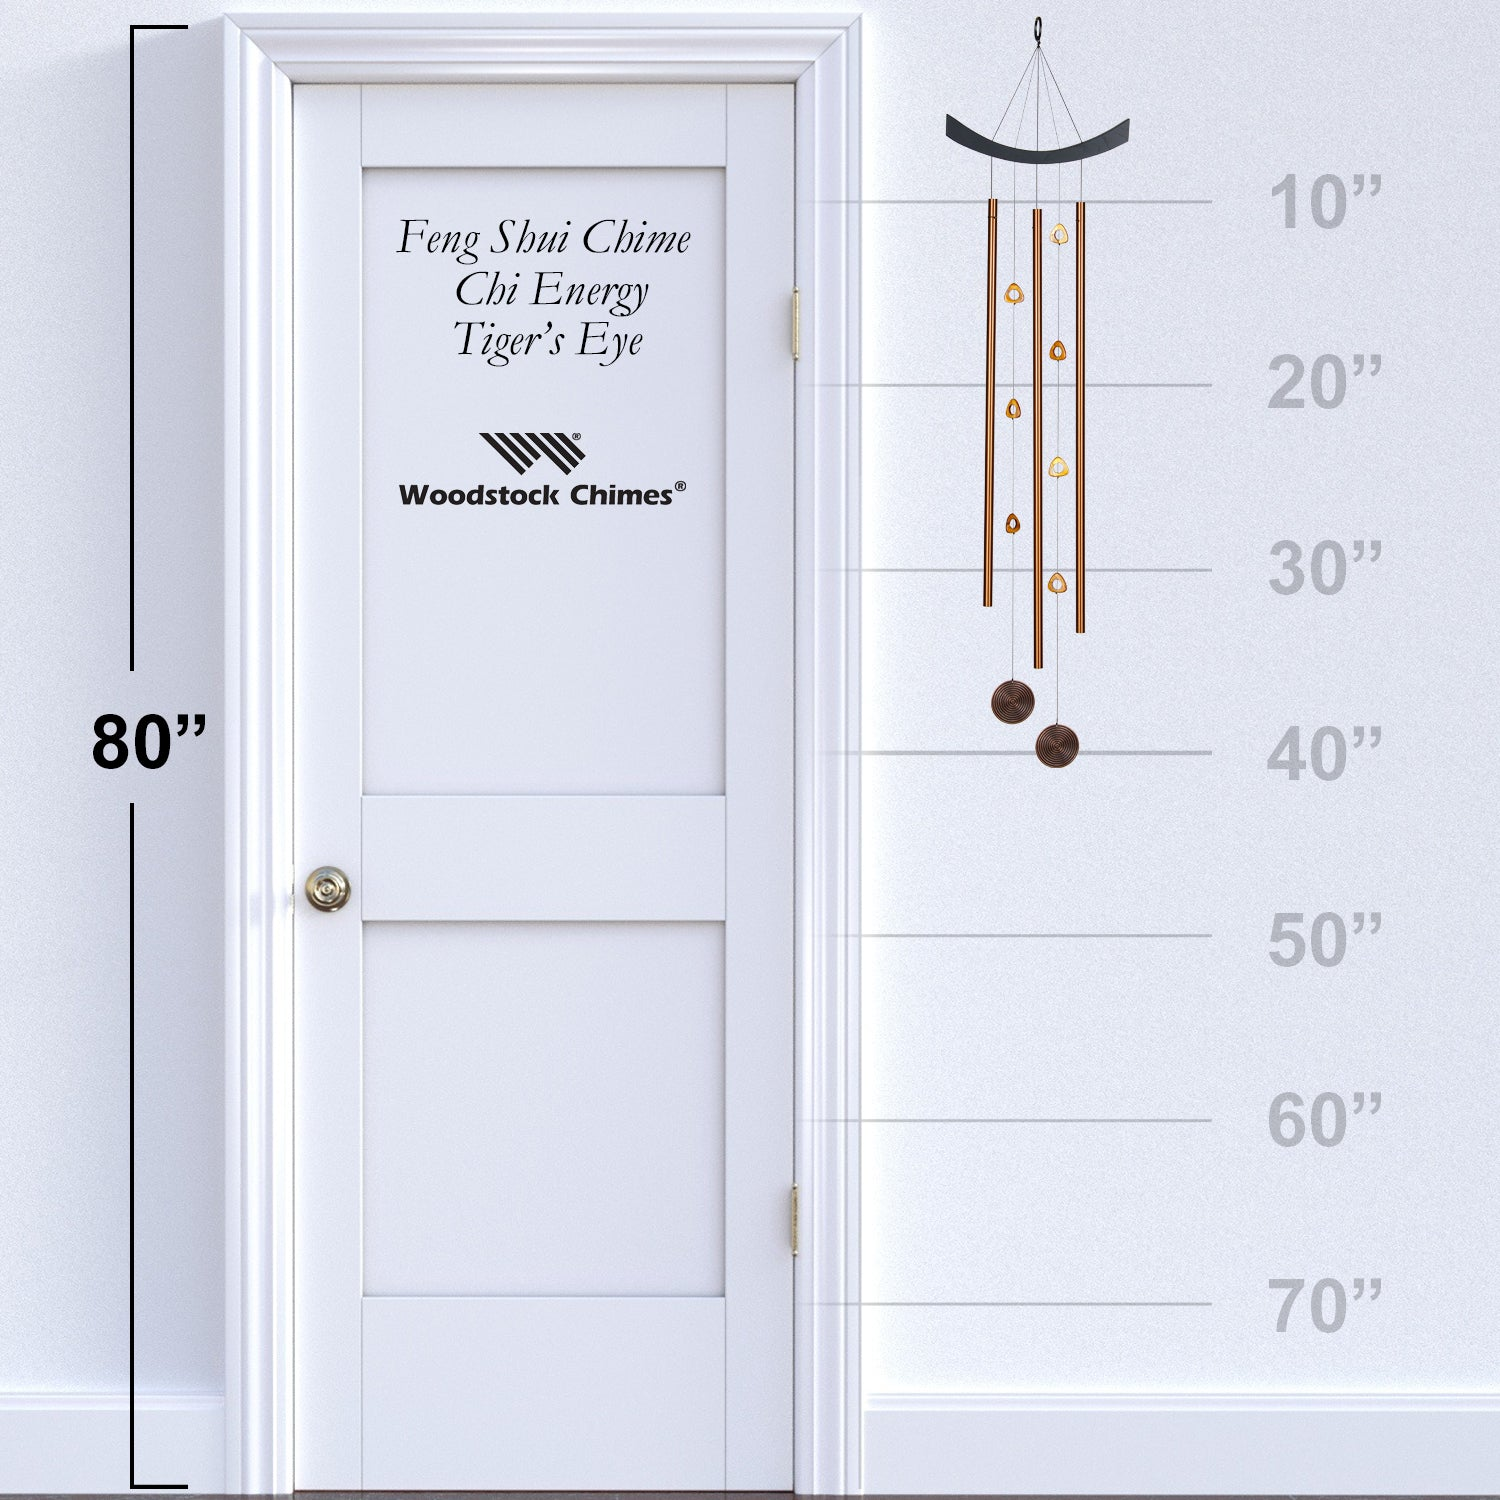 Feng Shui Chime - Chi Energy, Tiger's Eye proportion image